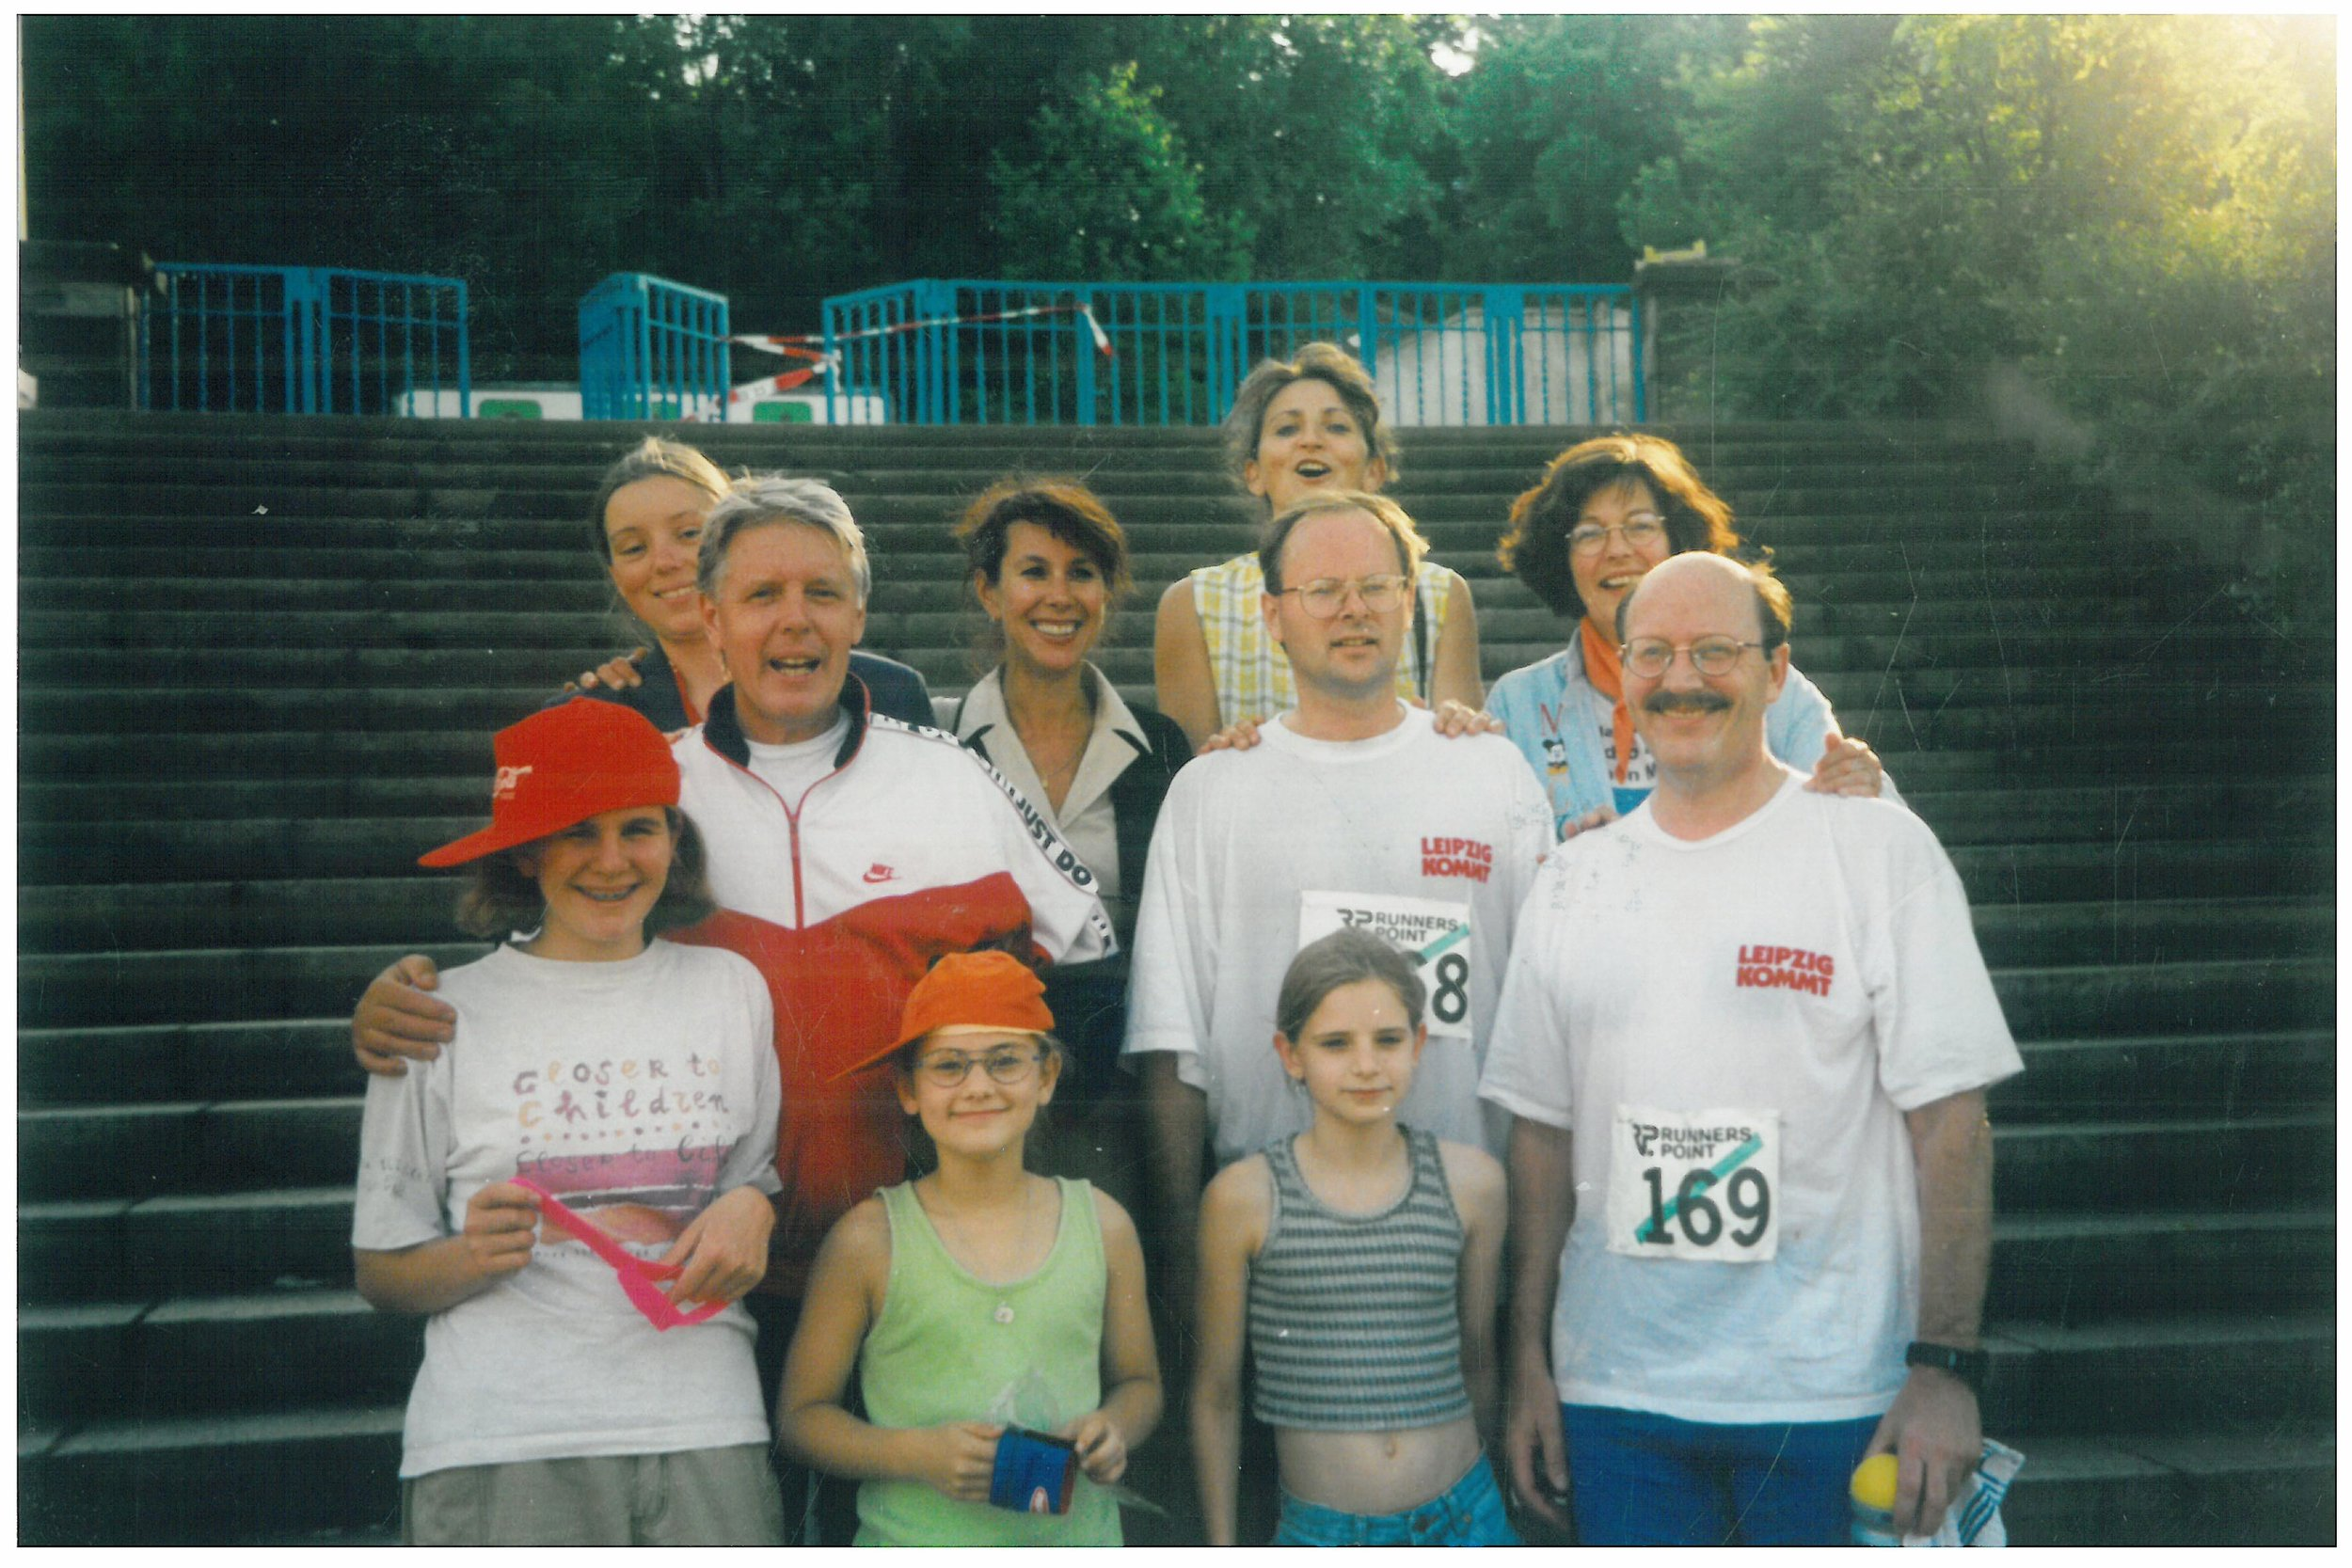 1997 Leipzig runners and supporters